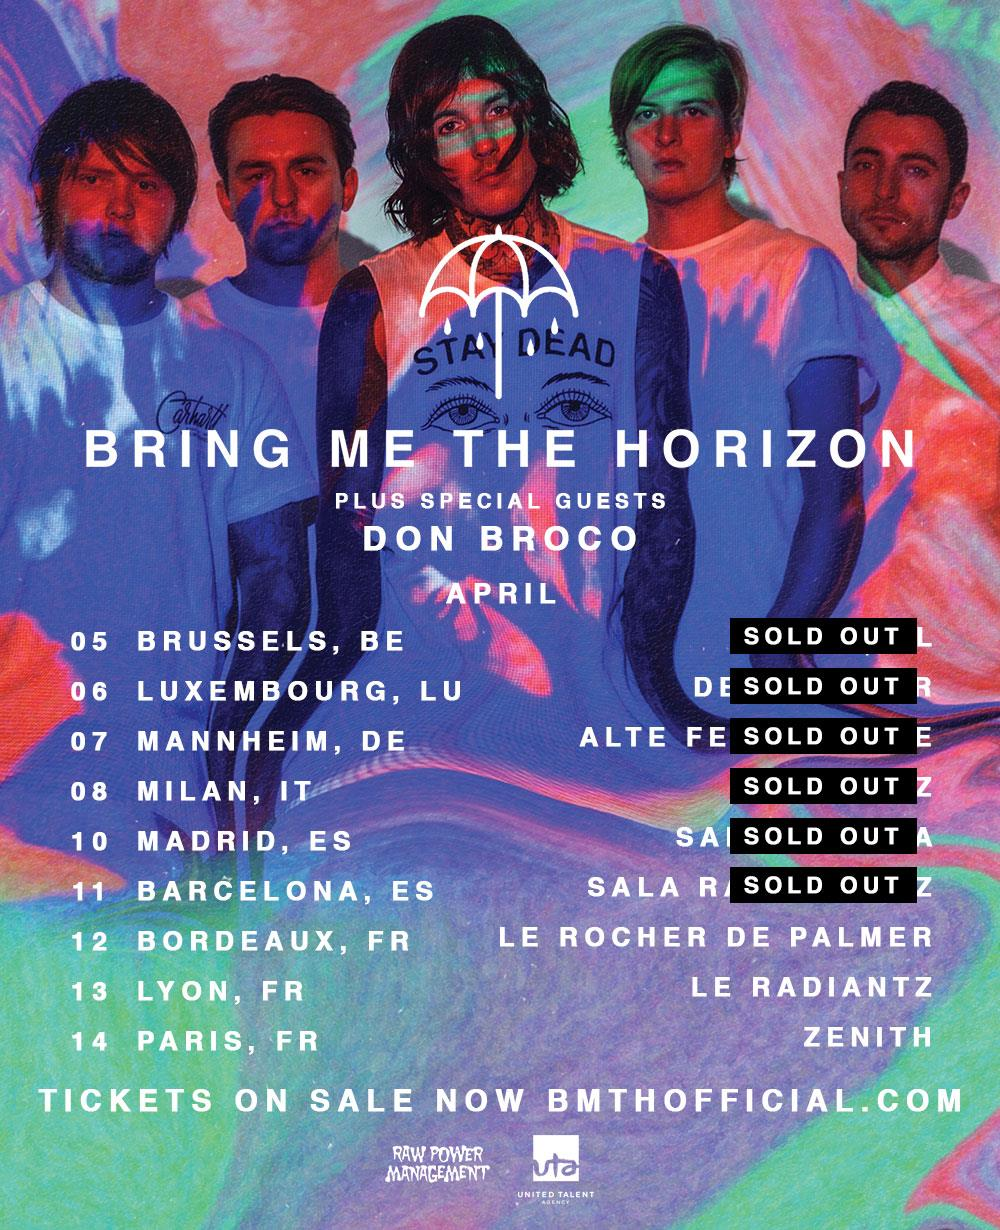 Bring Me The Horizon Mannheim April 2016 Flyer